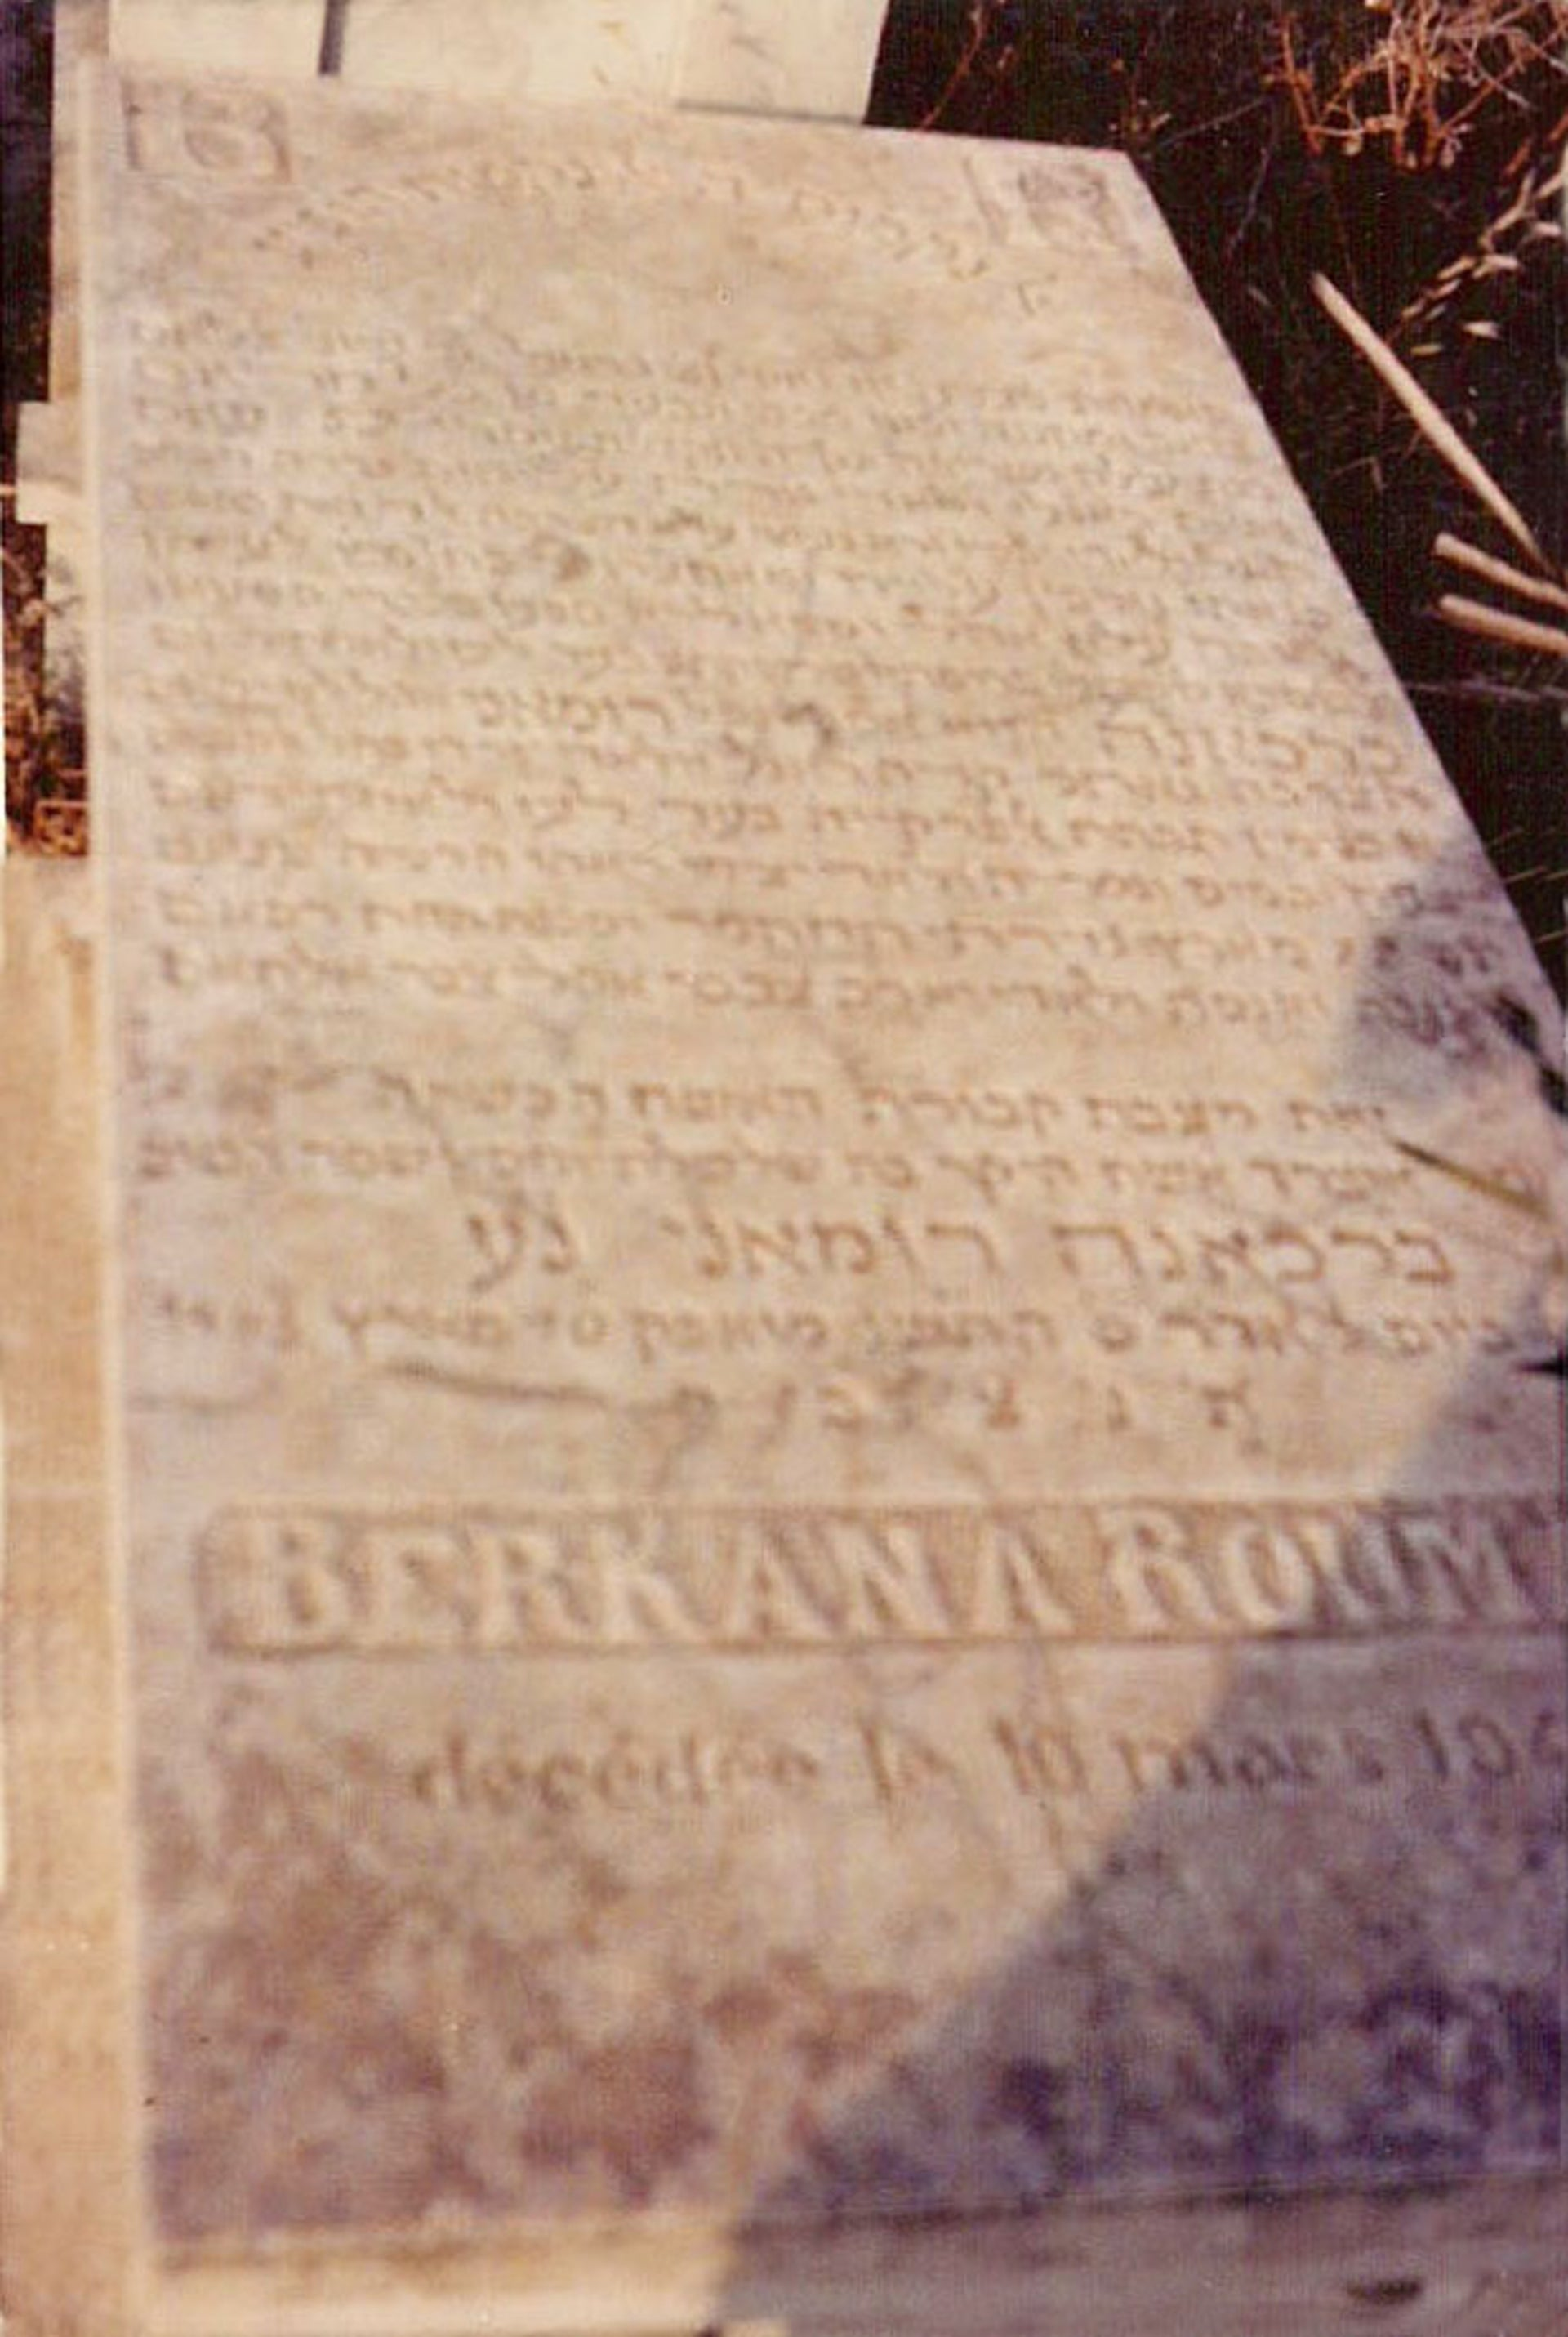 The tombstone of the author's paternal grandmother, Berkana Roumani, who died in the bombardment of La Marsa.